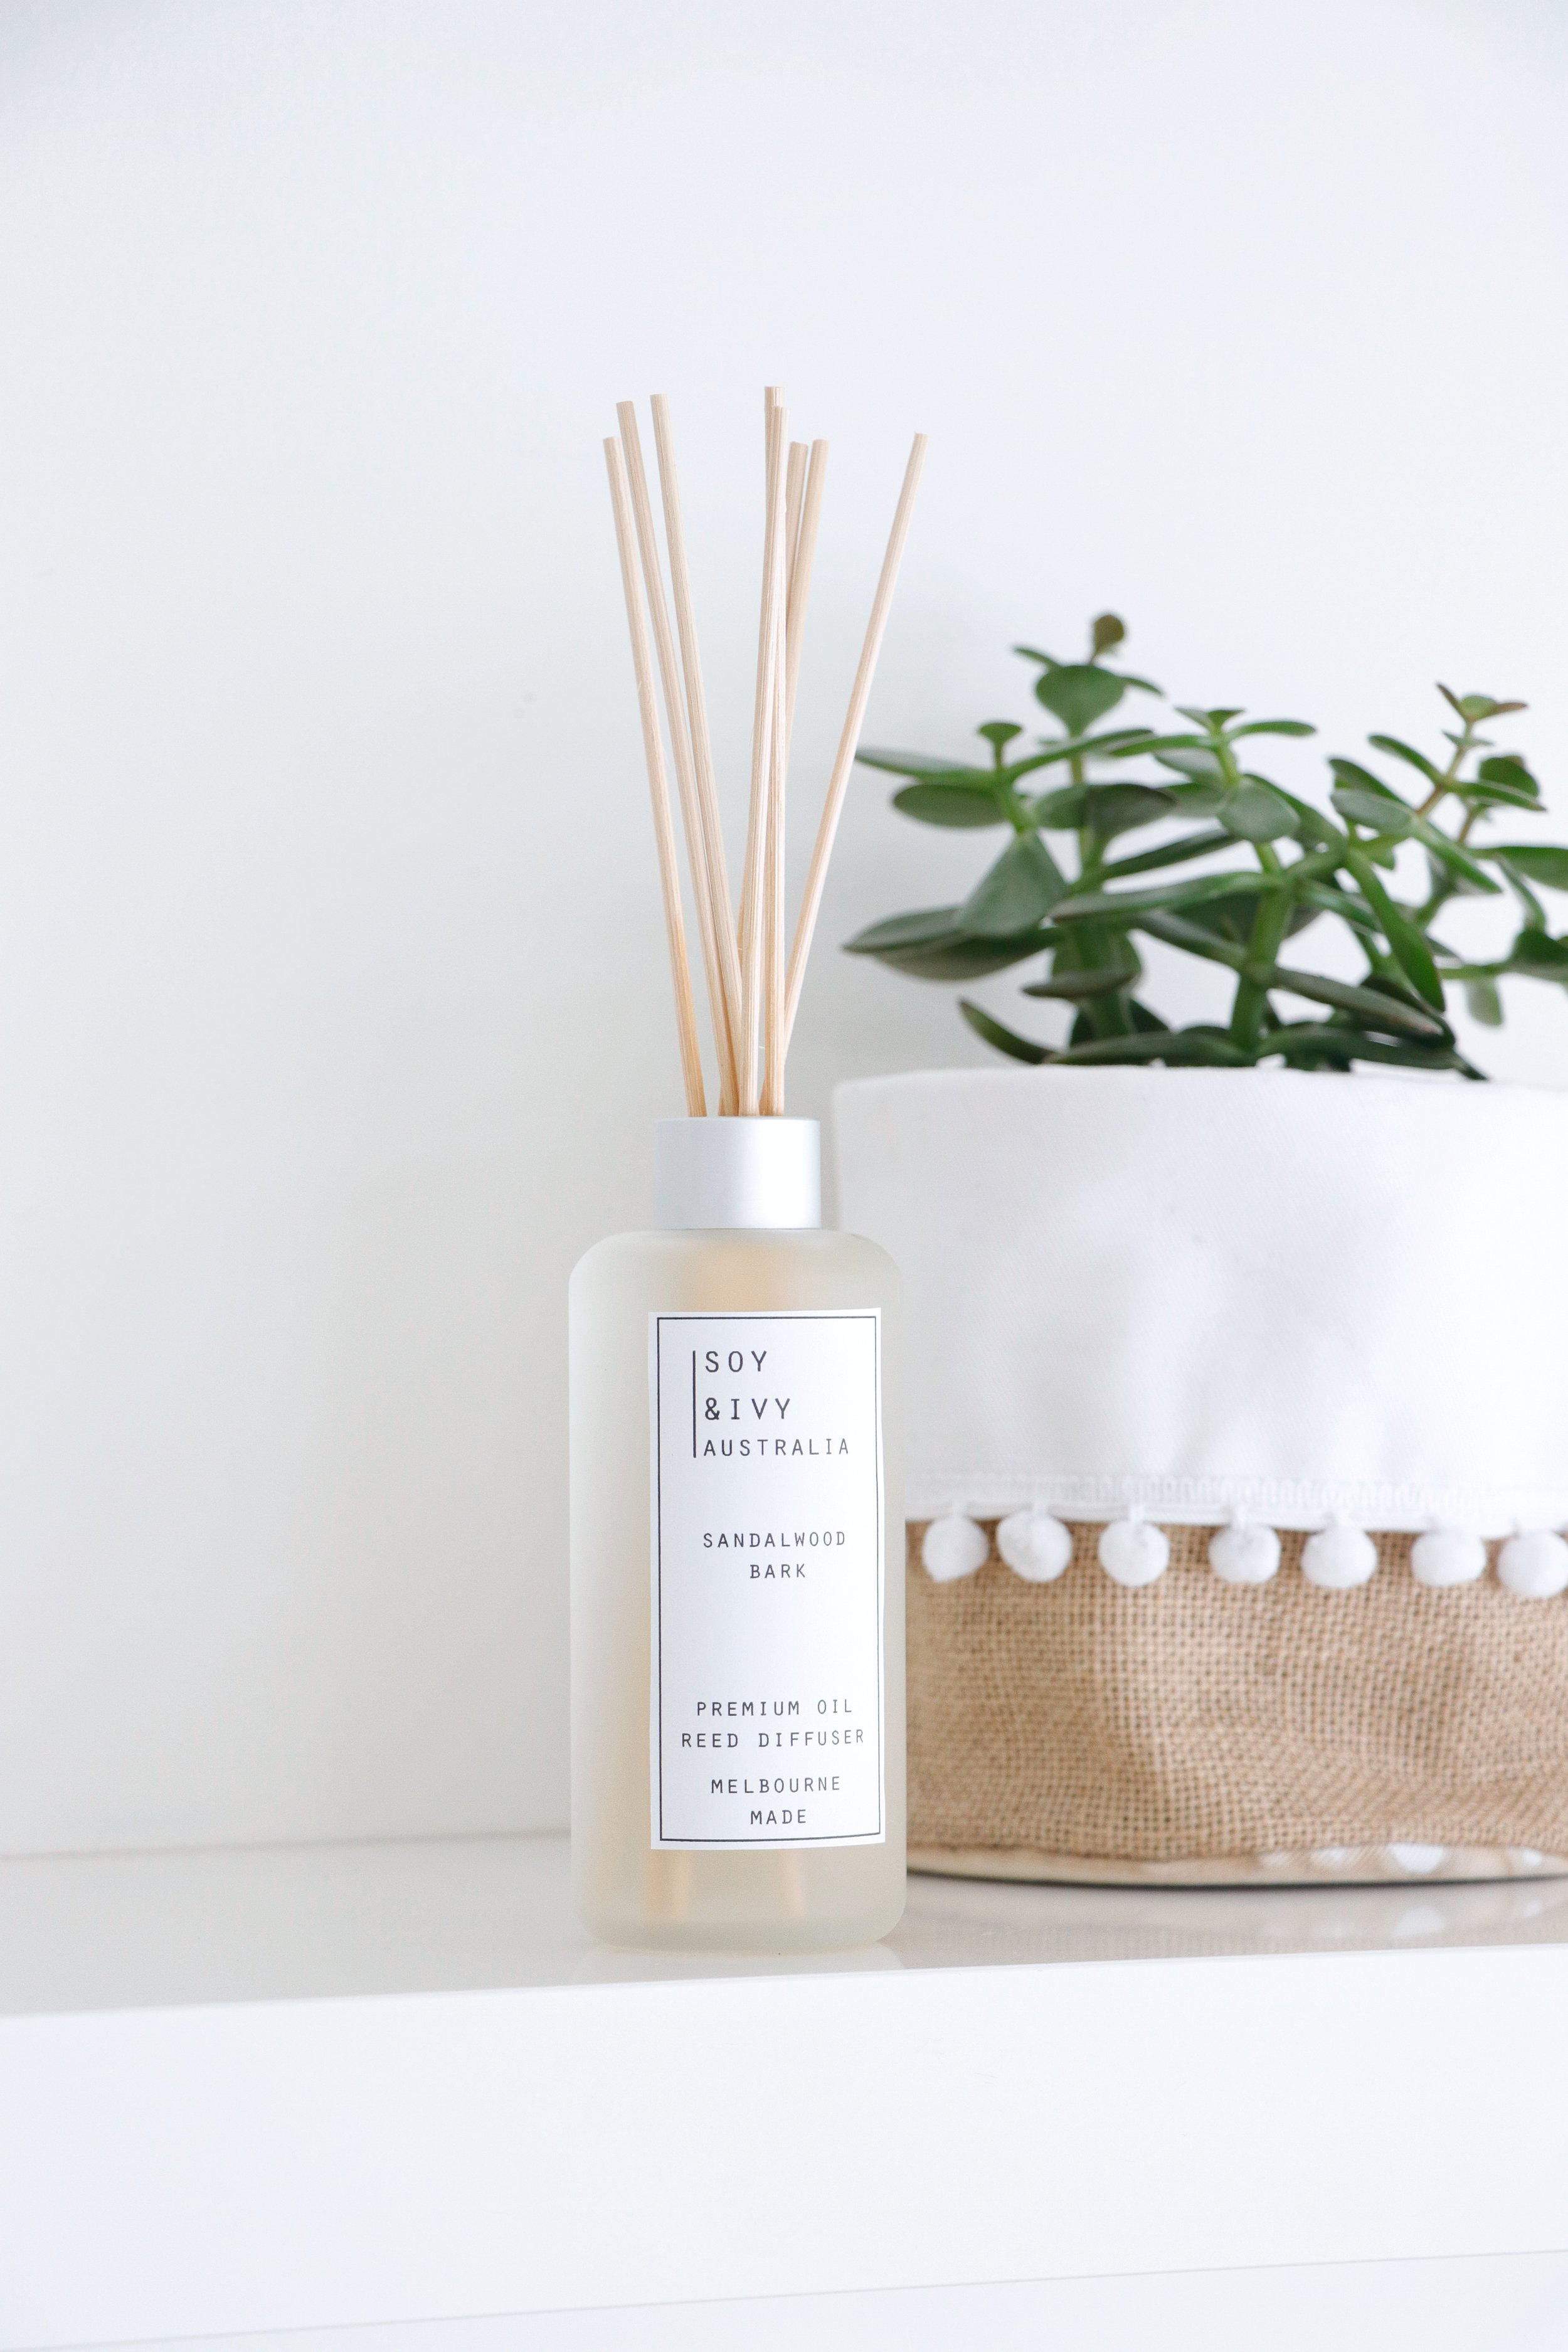 diffusers - our diffusers are handmade using Australian made fragrance oils, which meet national and international standards for safety.they last onwards of six months. sit back, relax and enjoy